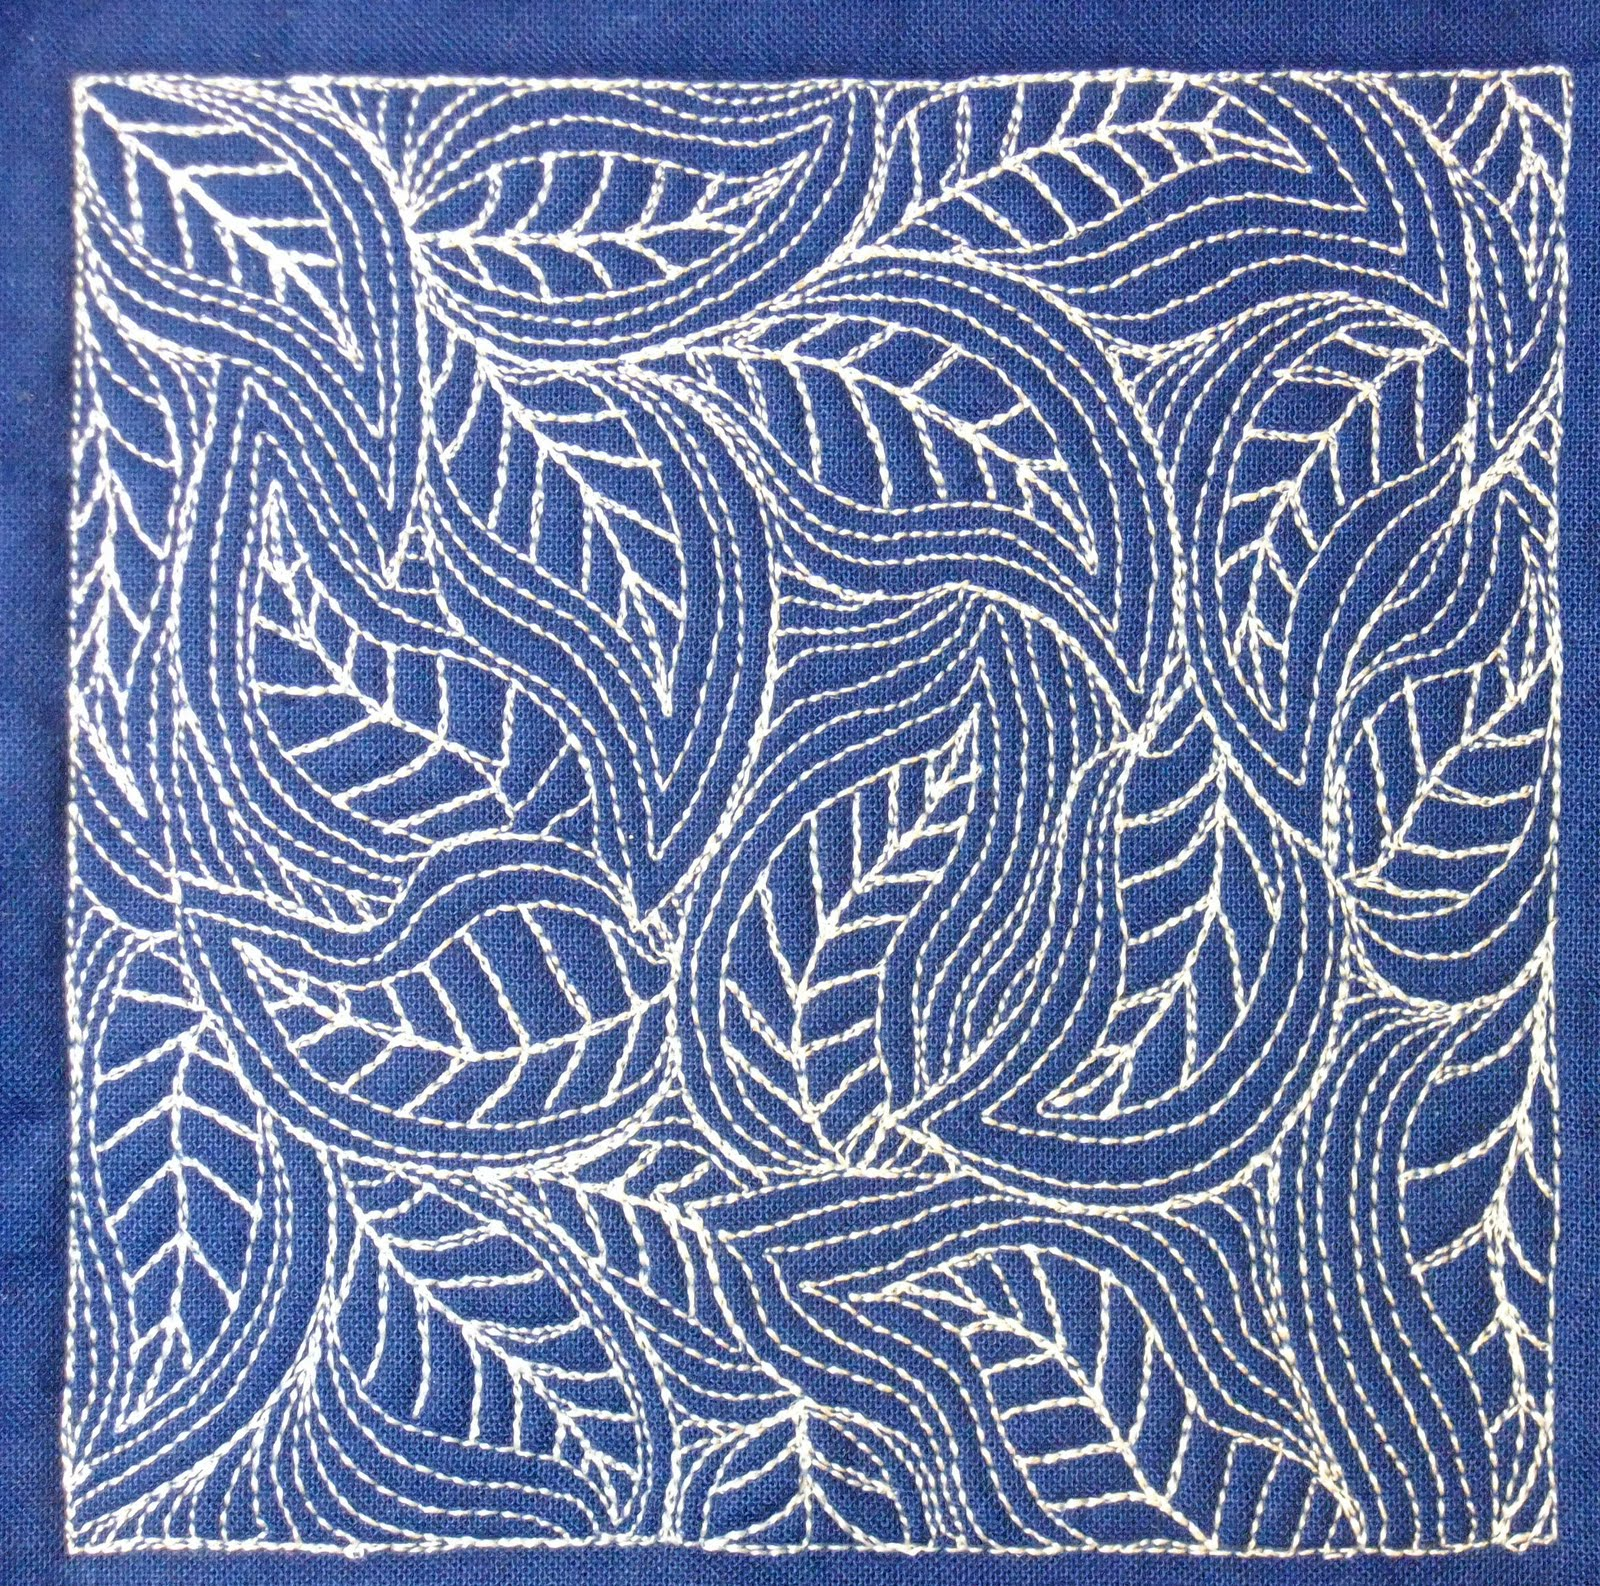 Quilting Patterns Stitching : The Free Motion Quilting Project: Day 364 - Flowing Leaves